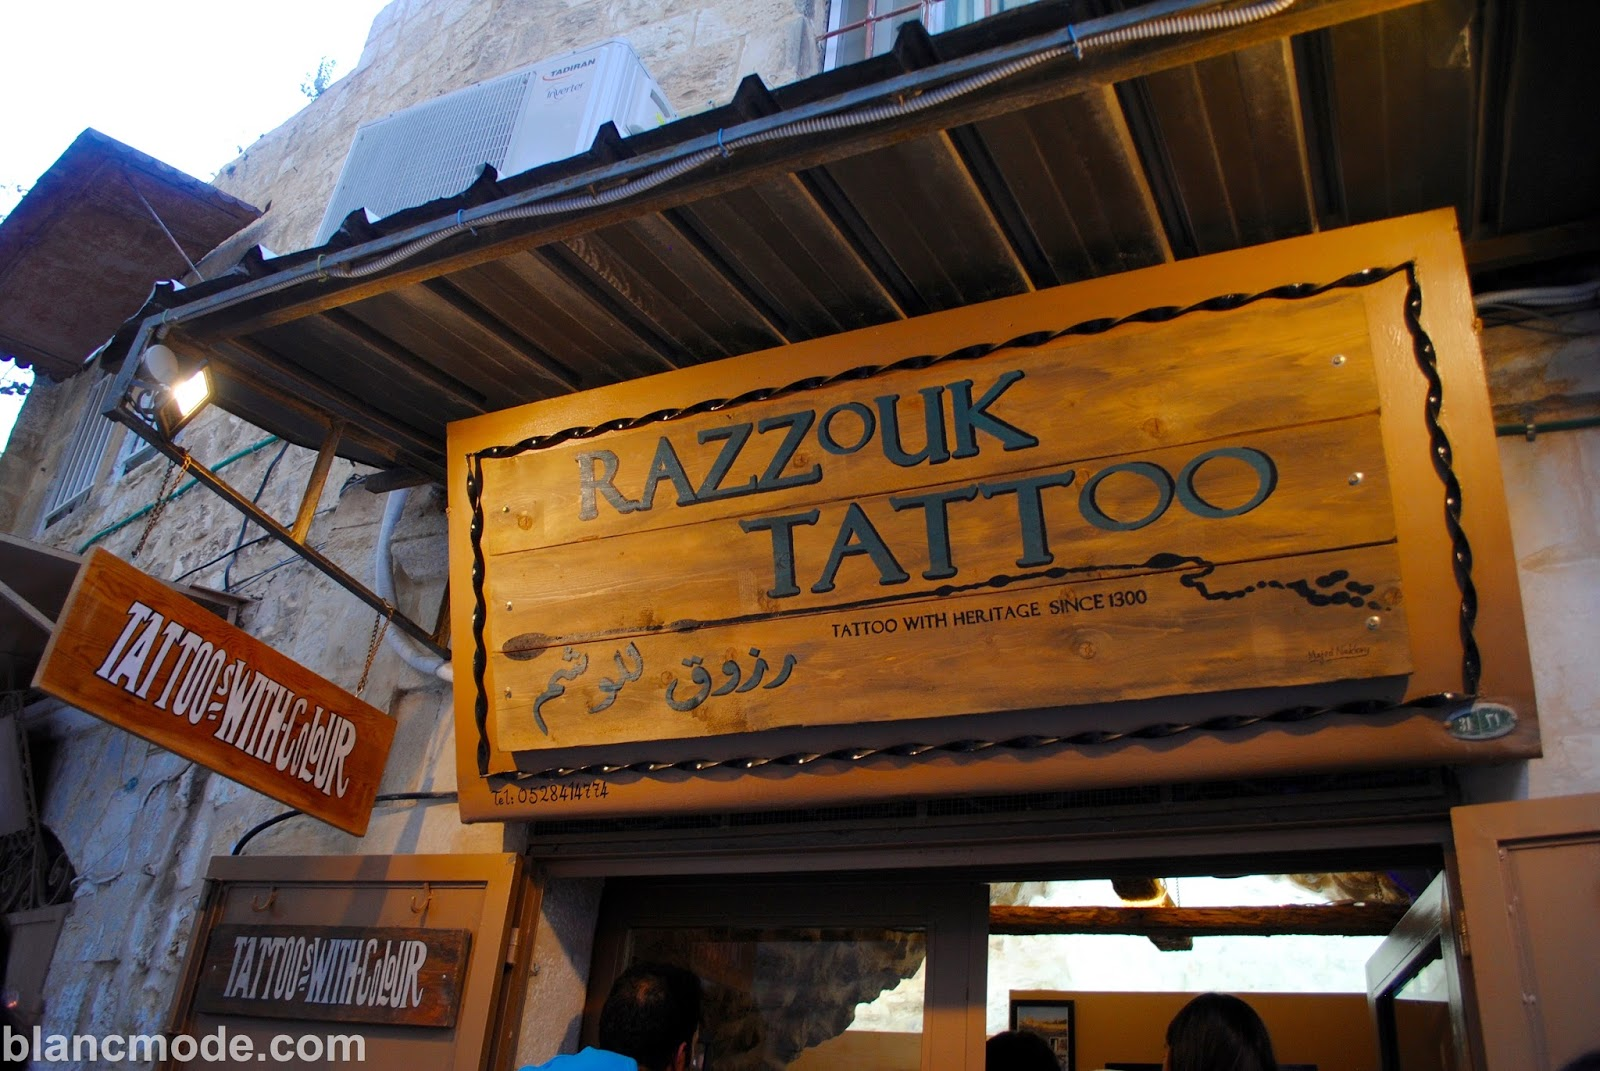 razzouk tattoo